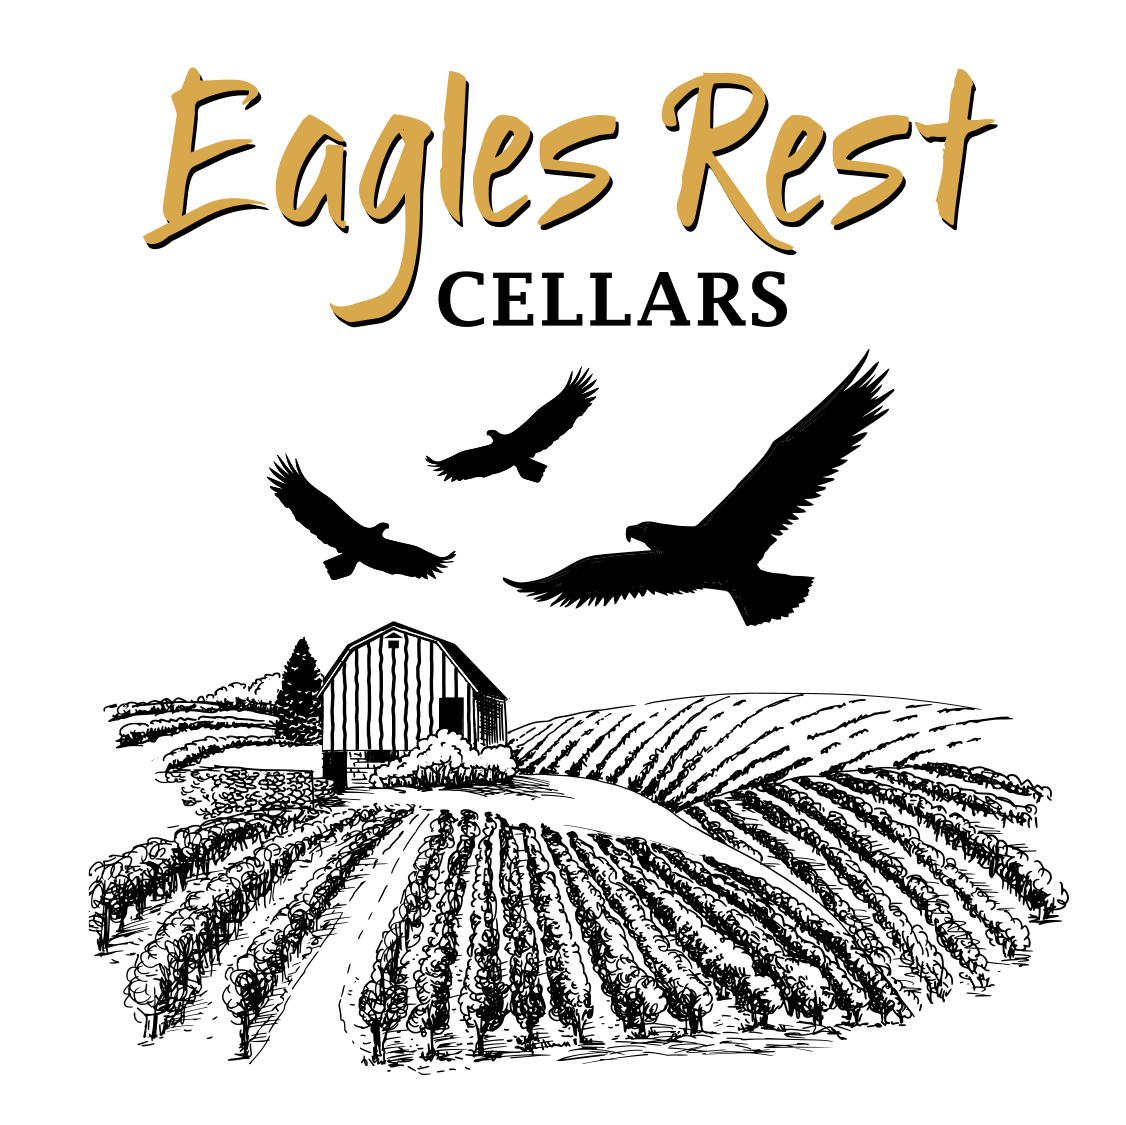 Eagles Rest Cellars